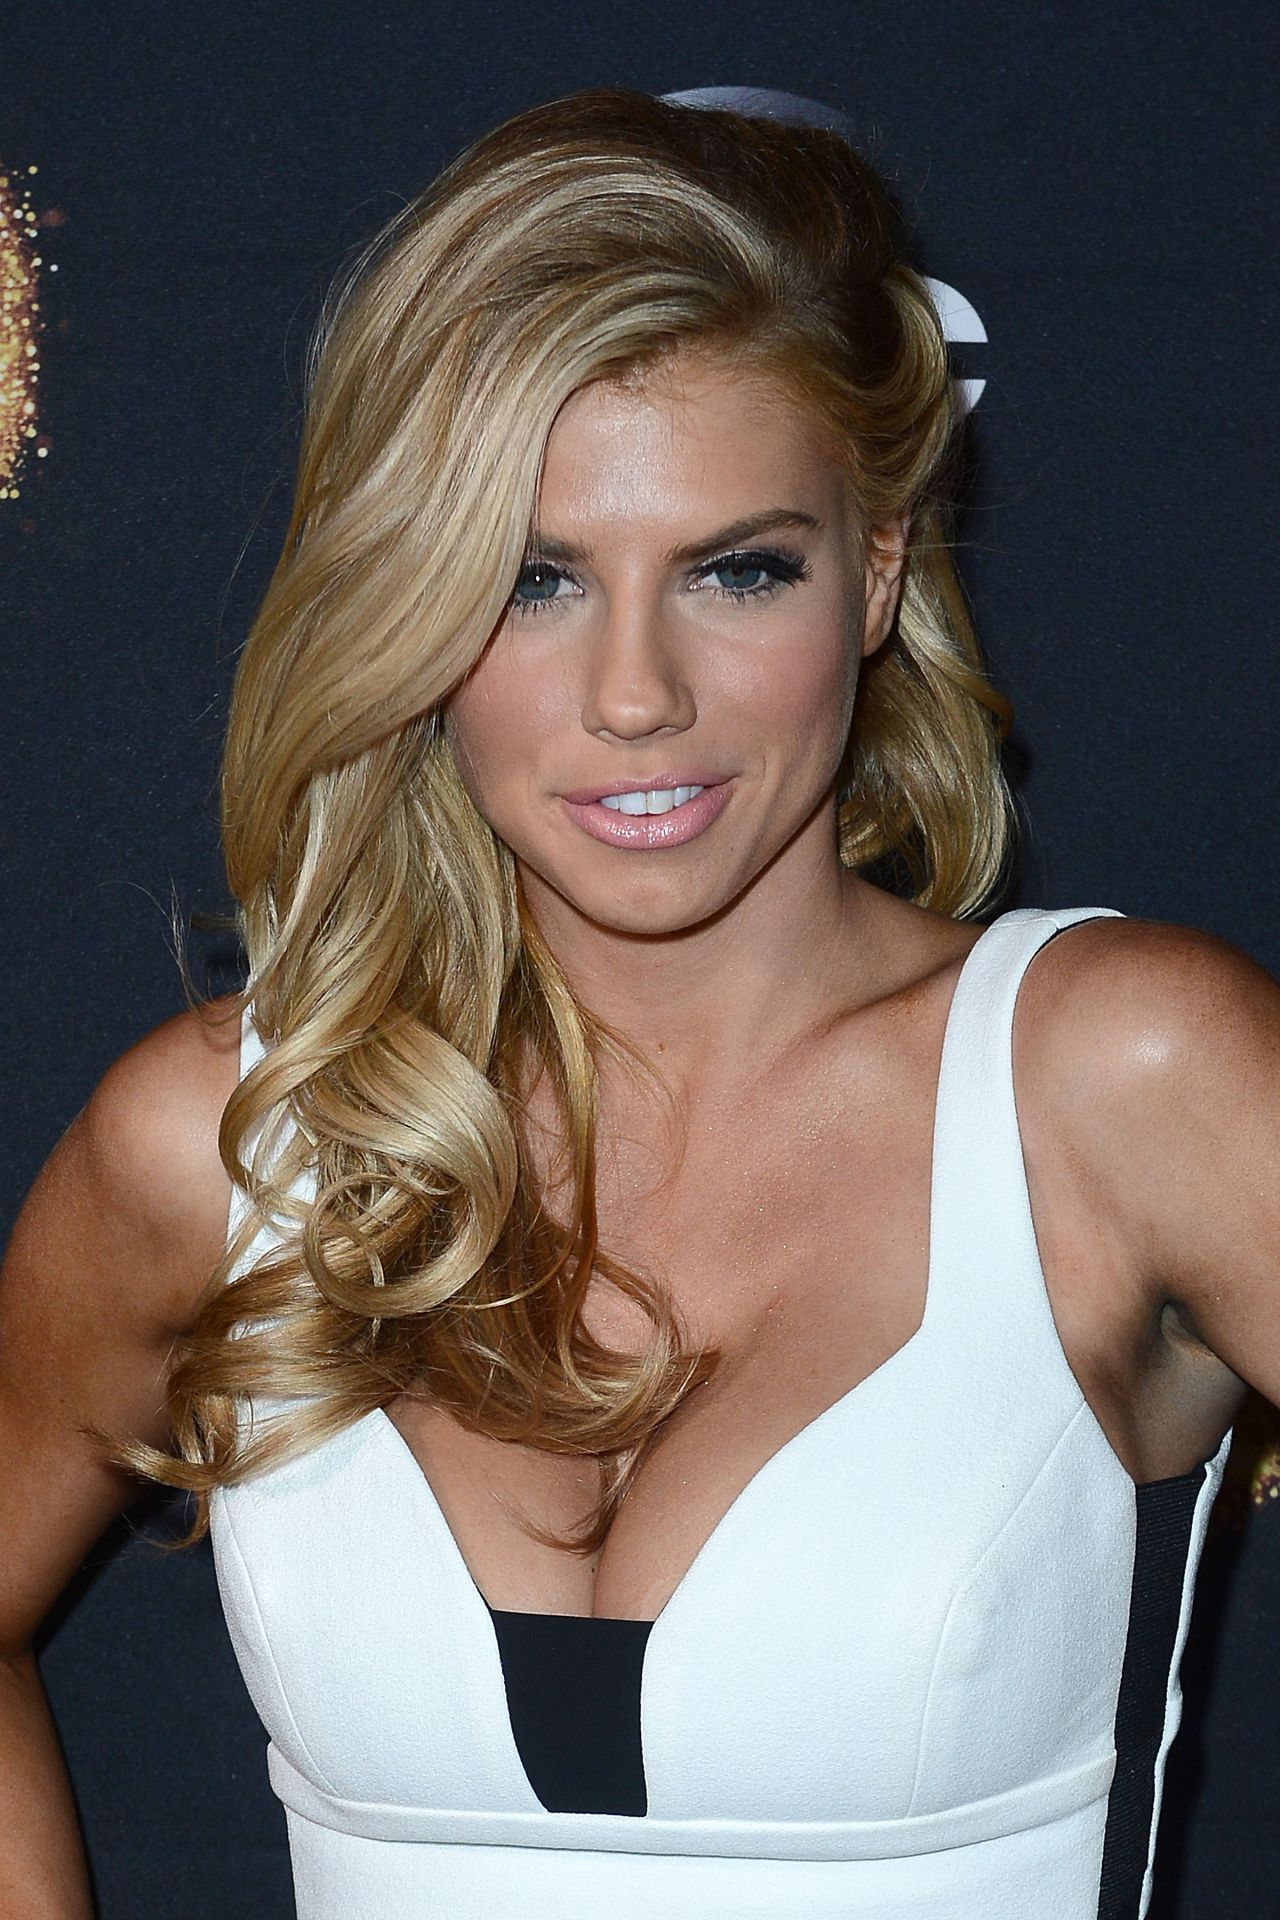 Red Dress Girl Wallpaper Charlotte Mckinney Dancing With The Stars Cast Party At